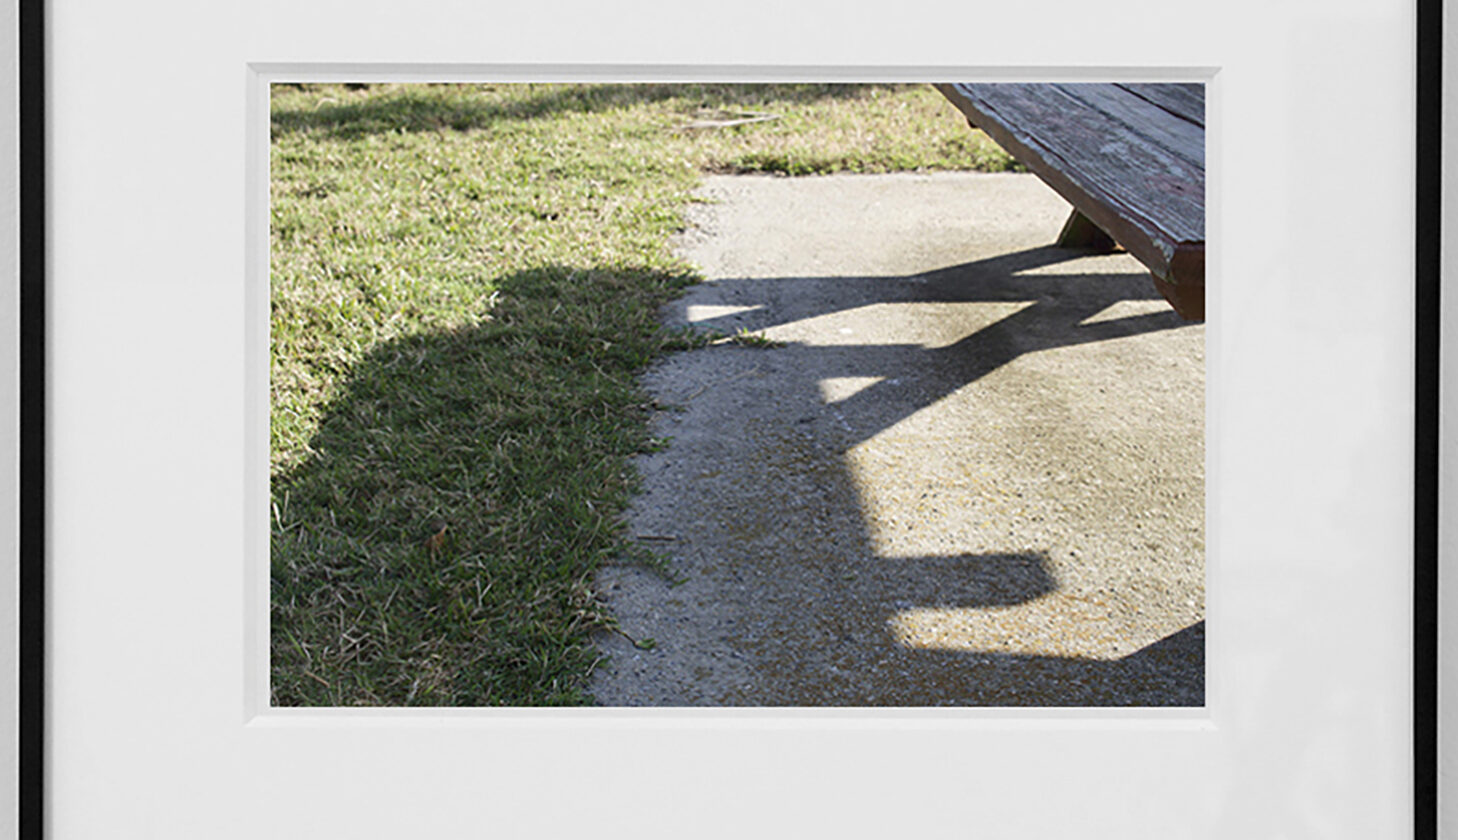 Park McArthur photograph depicting shadows of picnic table, from McArthur Park Overlook series